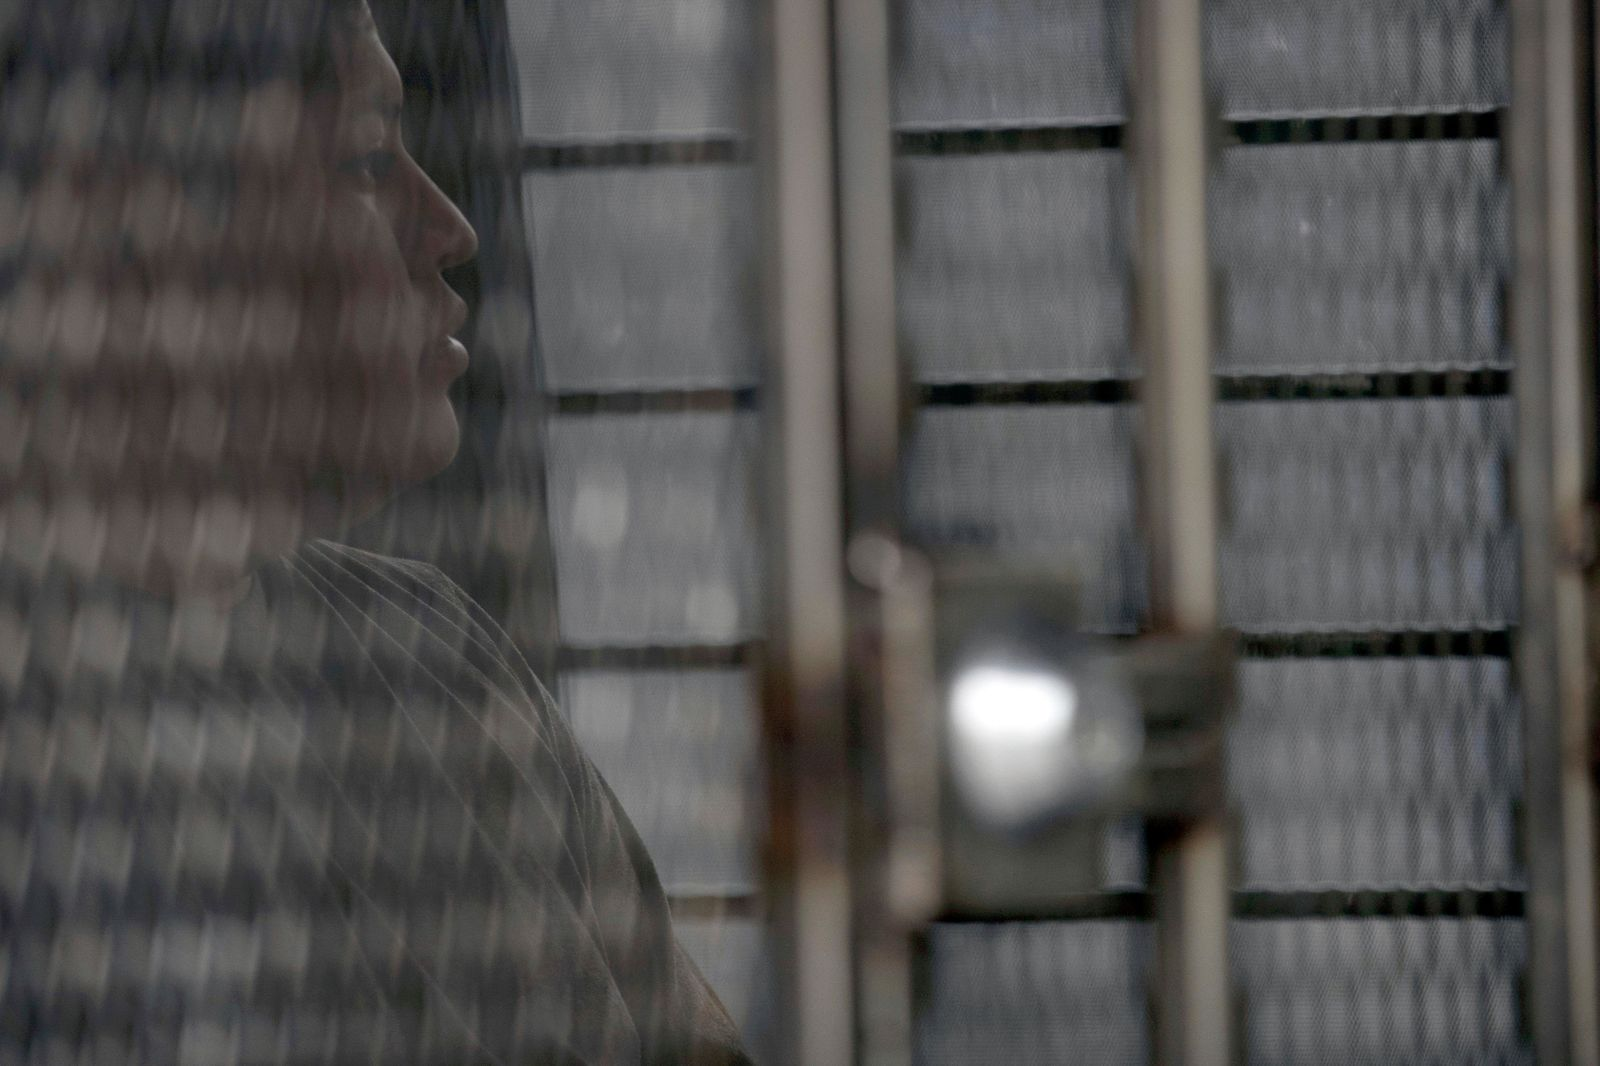 FILE - In this July 8, 2019 file photo, a man in hand and ankle cuffs waits in a van after being detained during a U.S. Immigration and Customs Enforcement (ICE) operation in Escondido, Calif. The administration of President Donald Trump announced Monday, July 22, 2019 that it will vastly expand the authority of immigration officers to deport migrants without allowing them to first appear before judges, its second major policy shift on immigration in eight days. Starting Tuesday, fast-track deportations can apply to anyone in the country illegally for less than two years. (AP Photo/Gregory Bull, File)